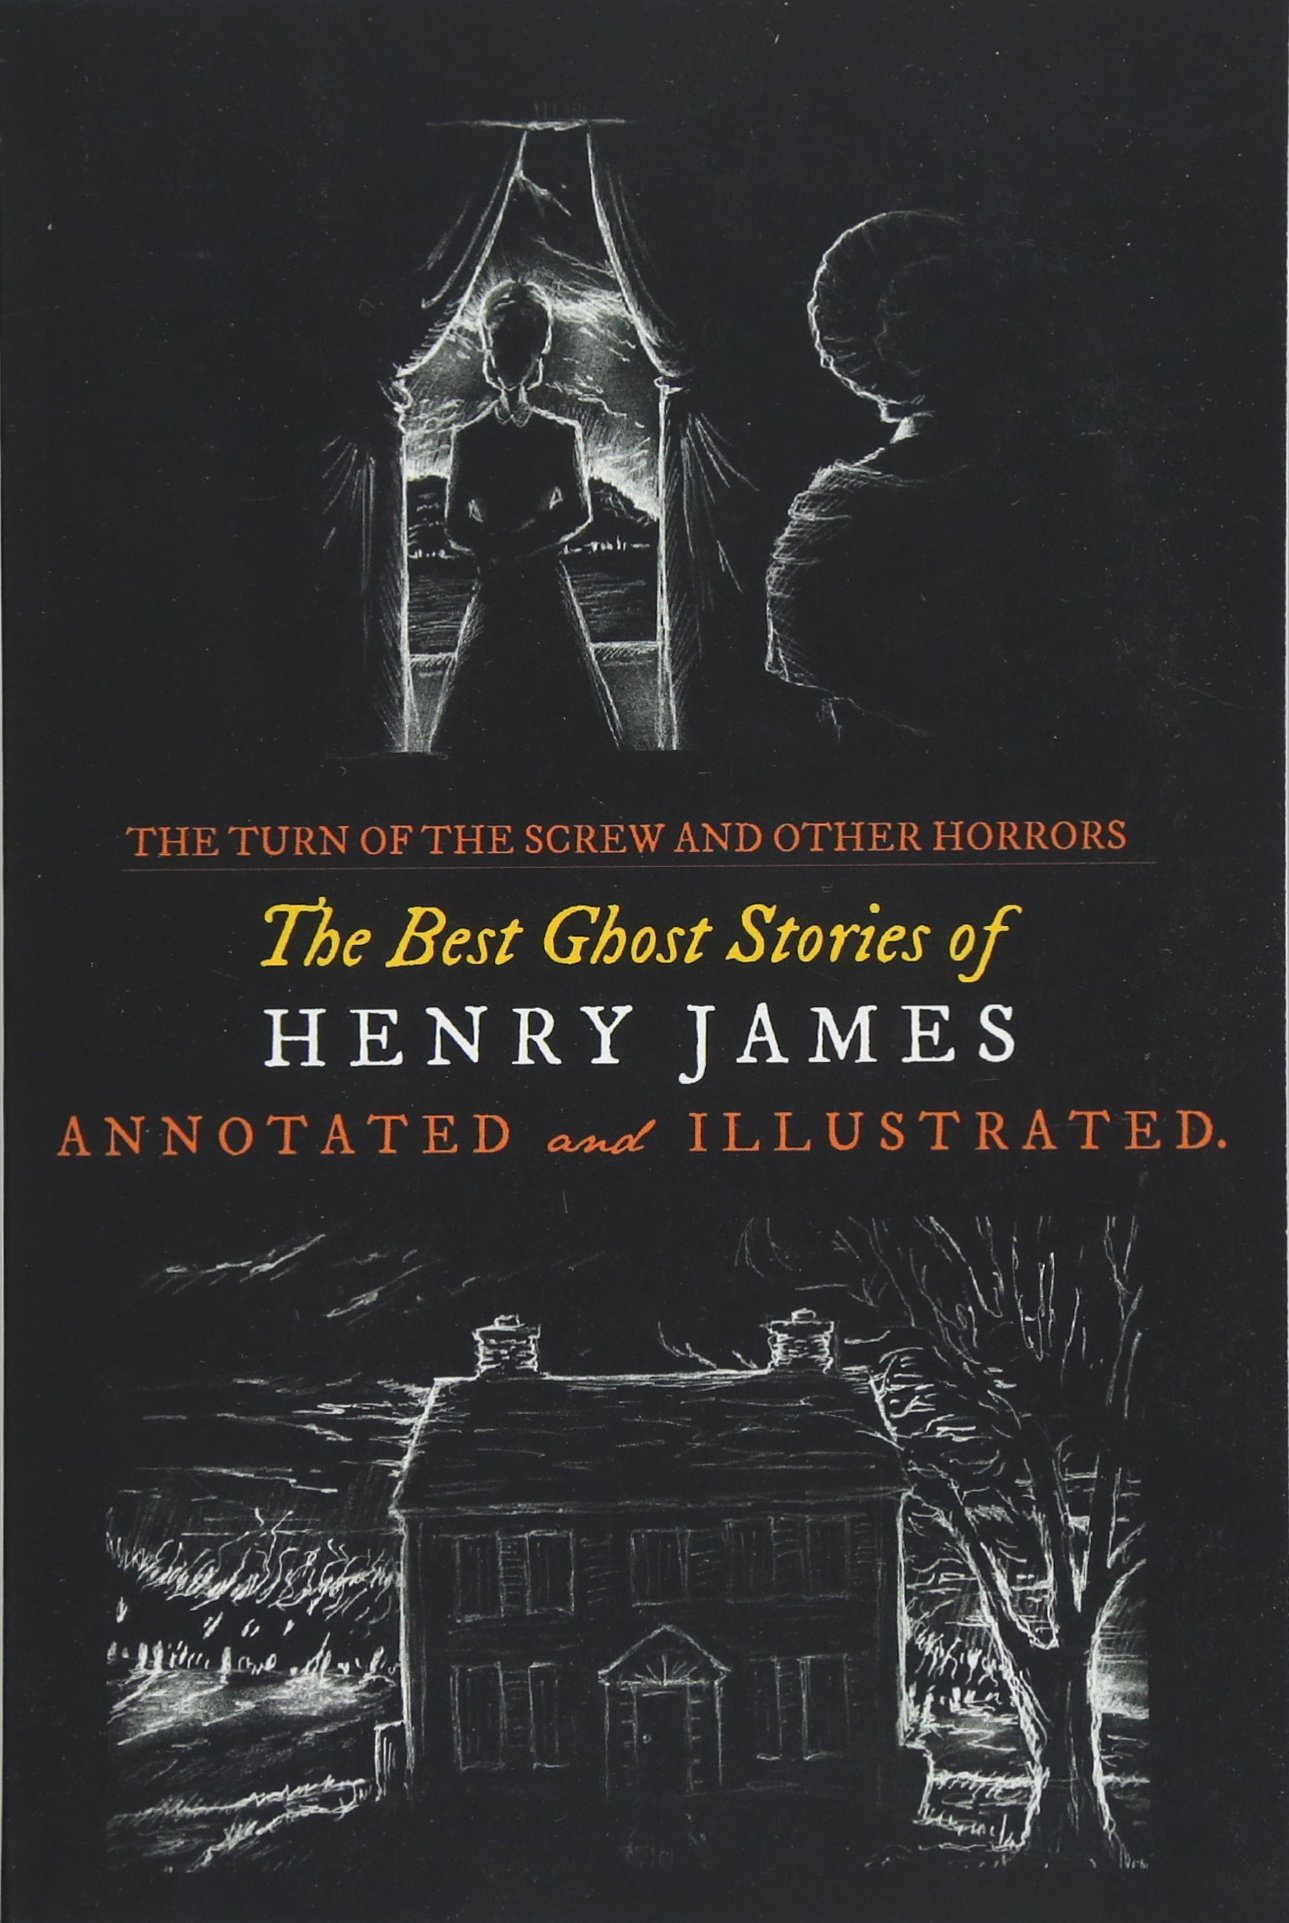 The Turn of the Screw and Other Horrors: The Best Ghost Stories of Henry James: Annotated and Illustrated (Oldstyle Tales of Murder, Mystery, Hauntings, and Horror) (Volume 9) PDF